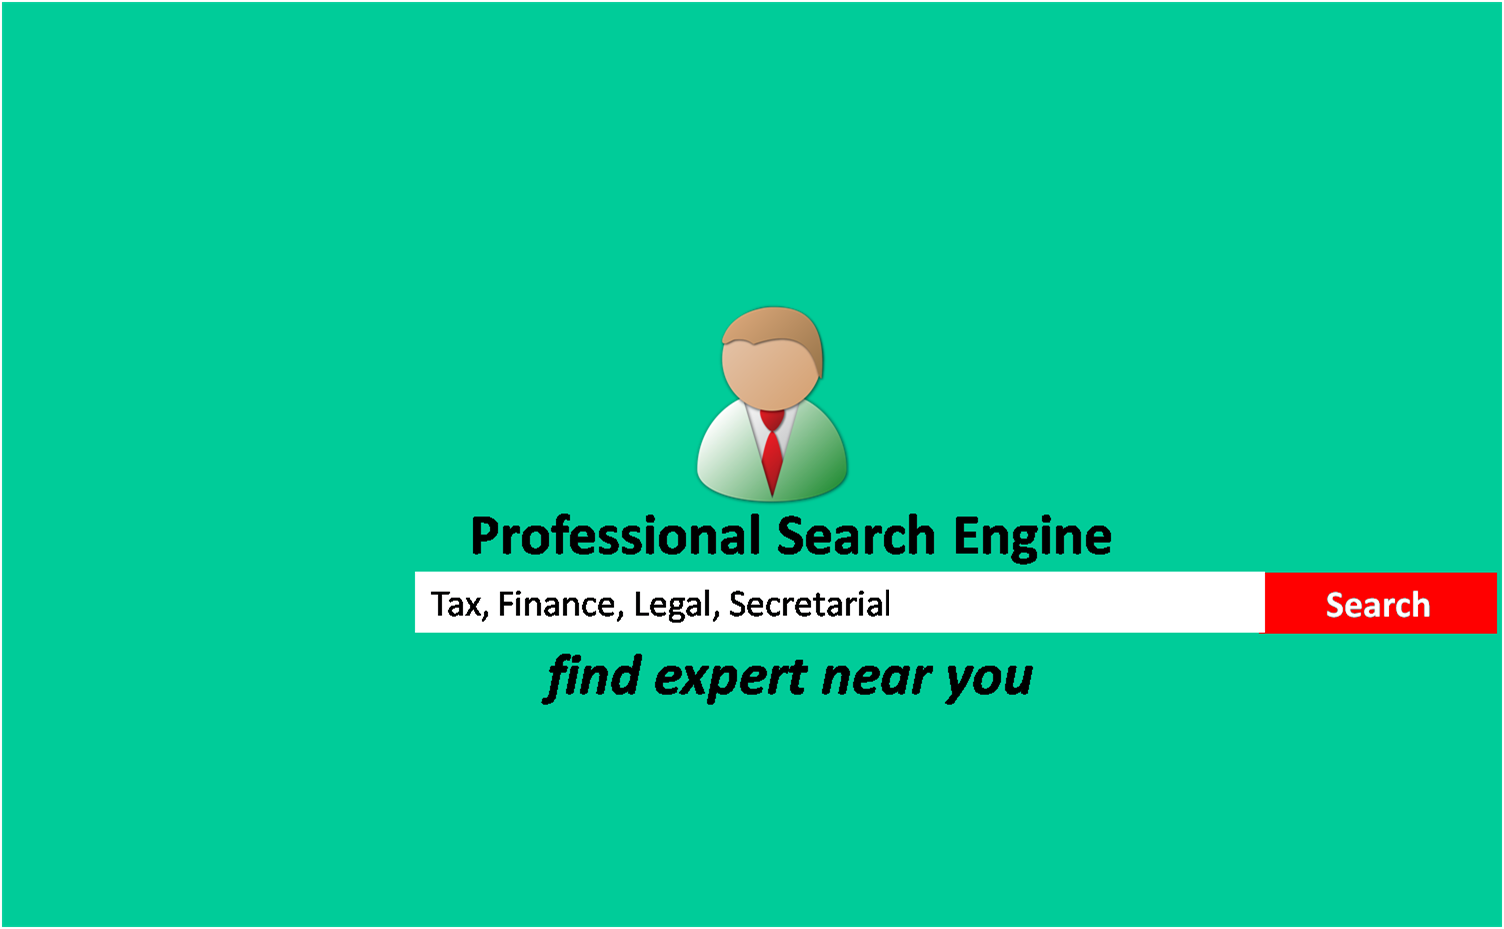 Search Expert Near you